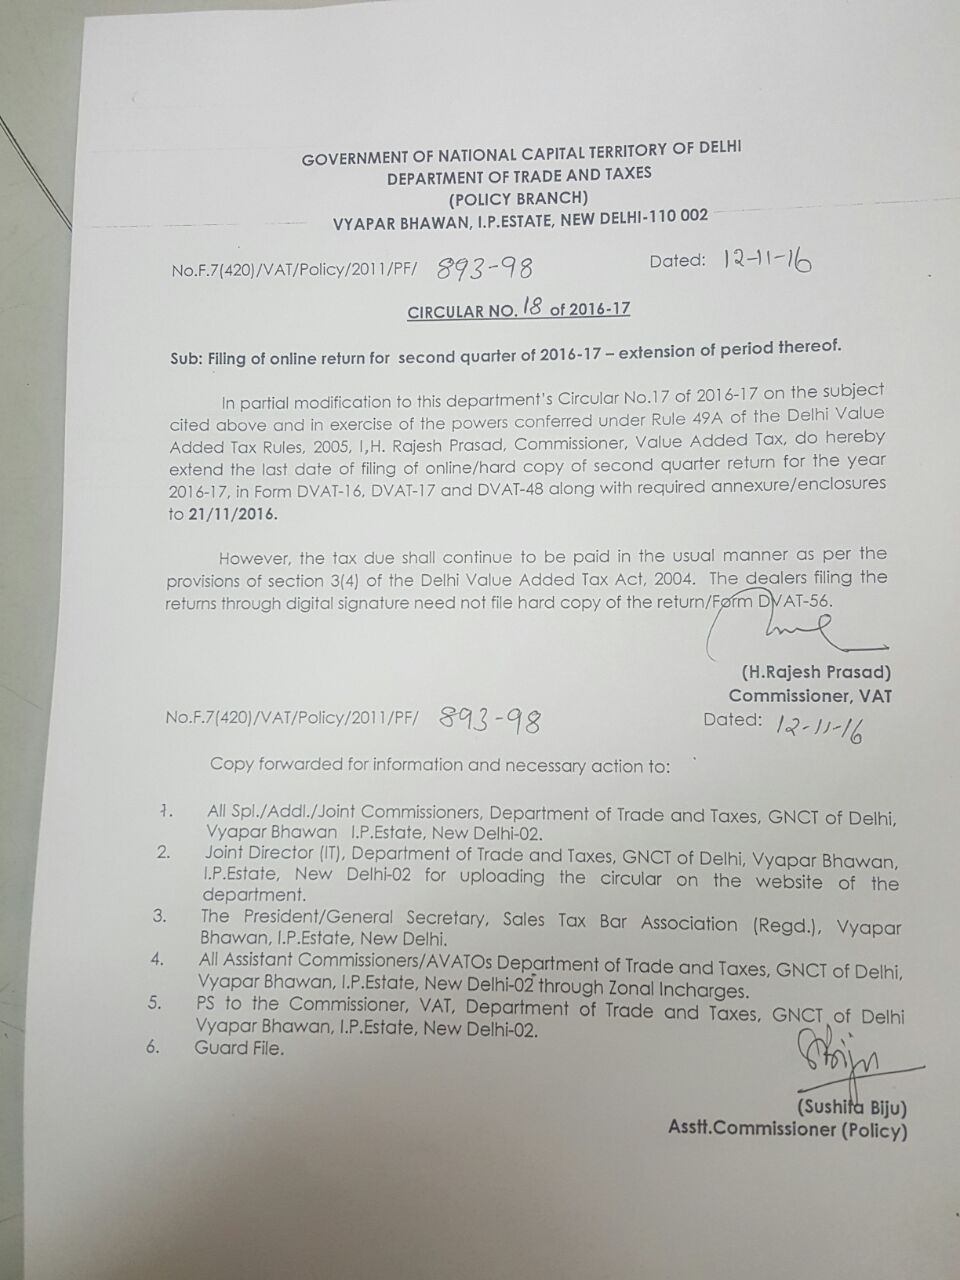 Date of filing of DVAT Return for Q2, 2016-17 extended upto 21.11.2016